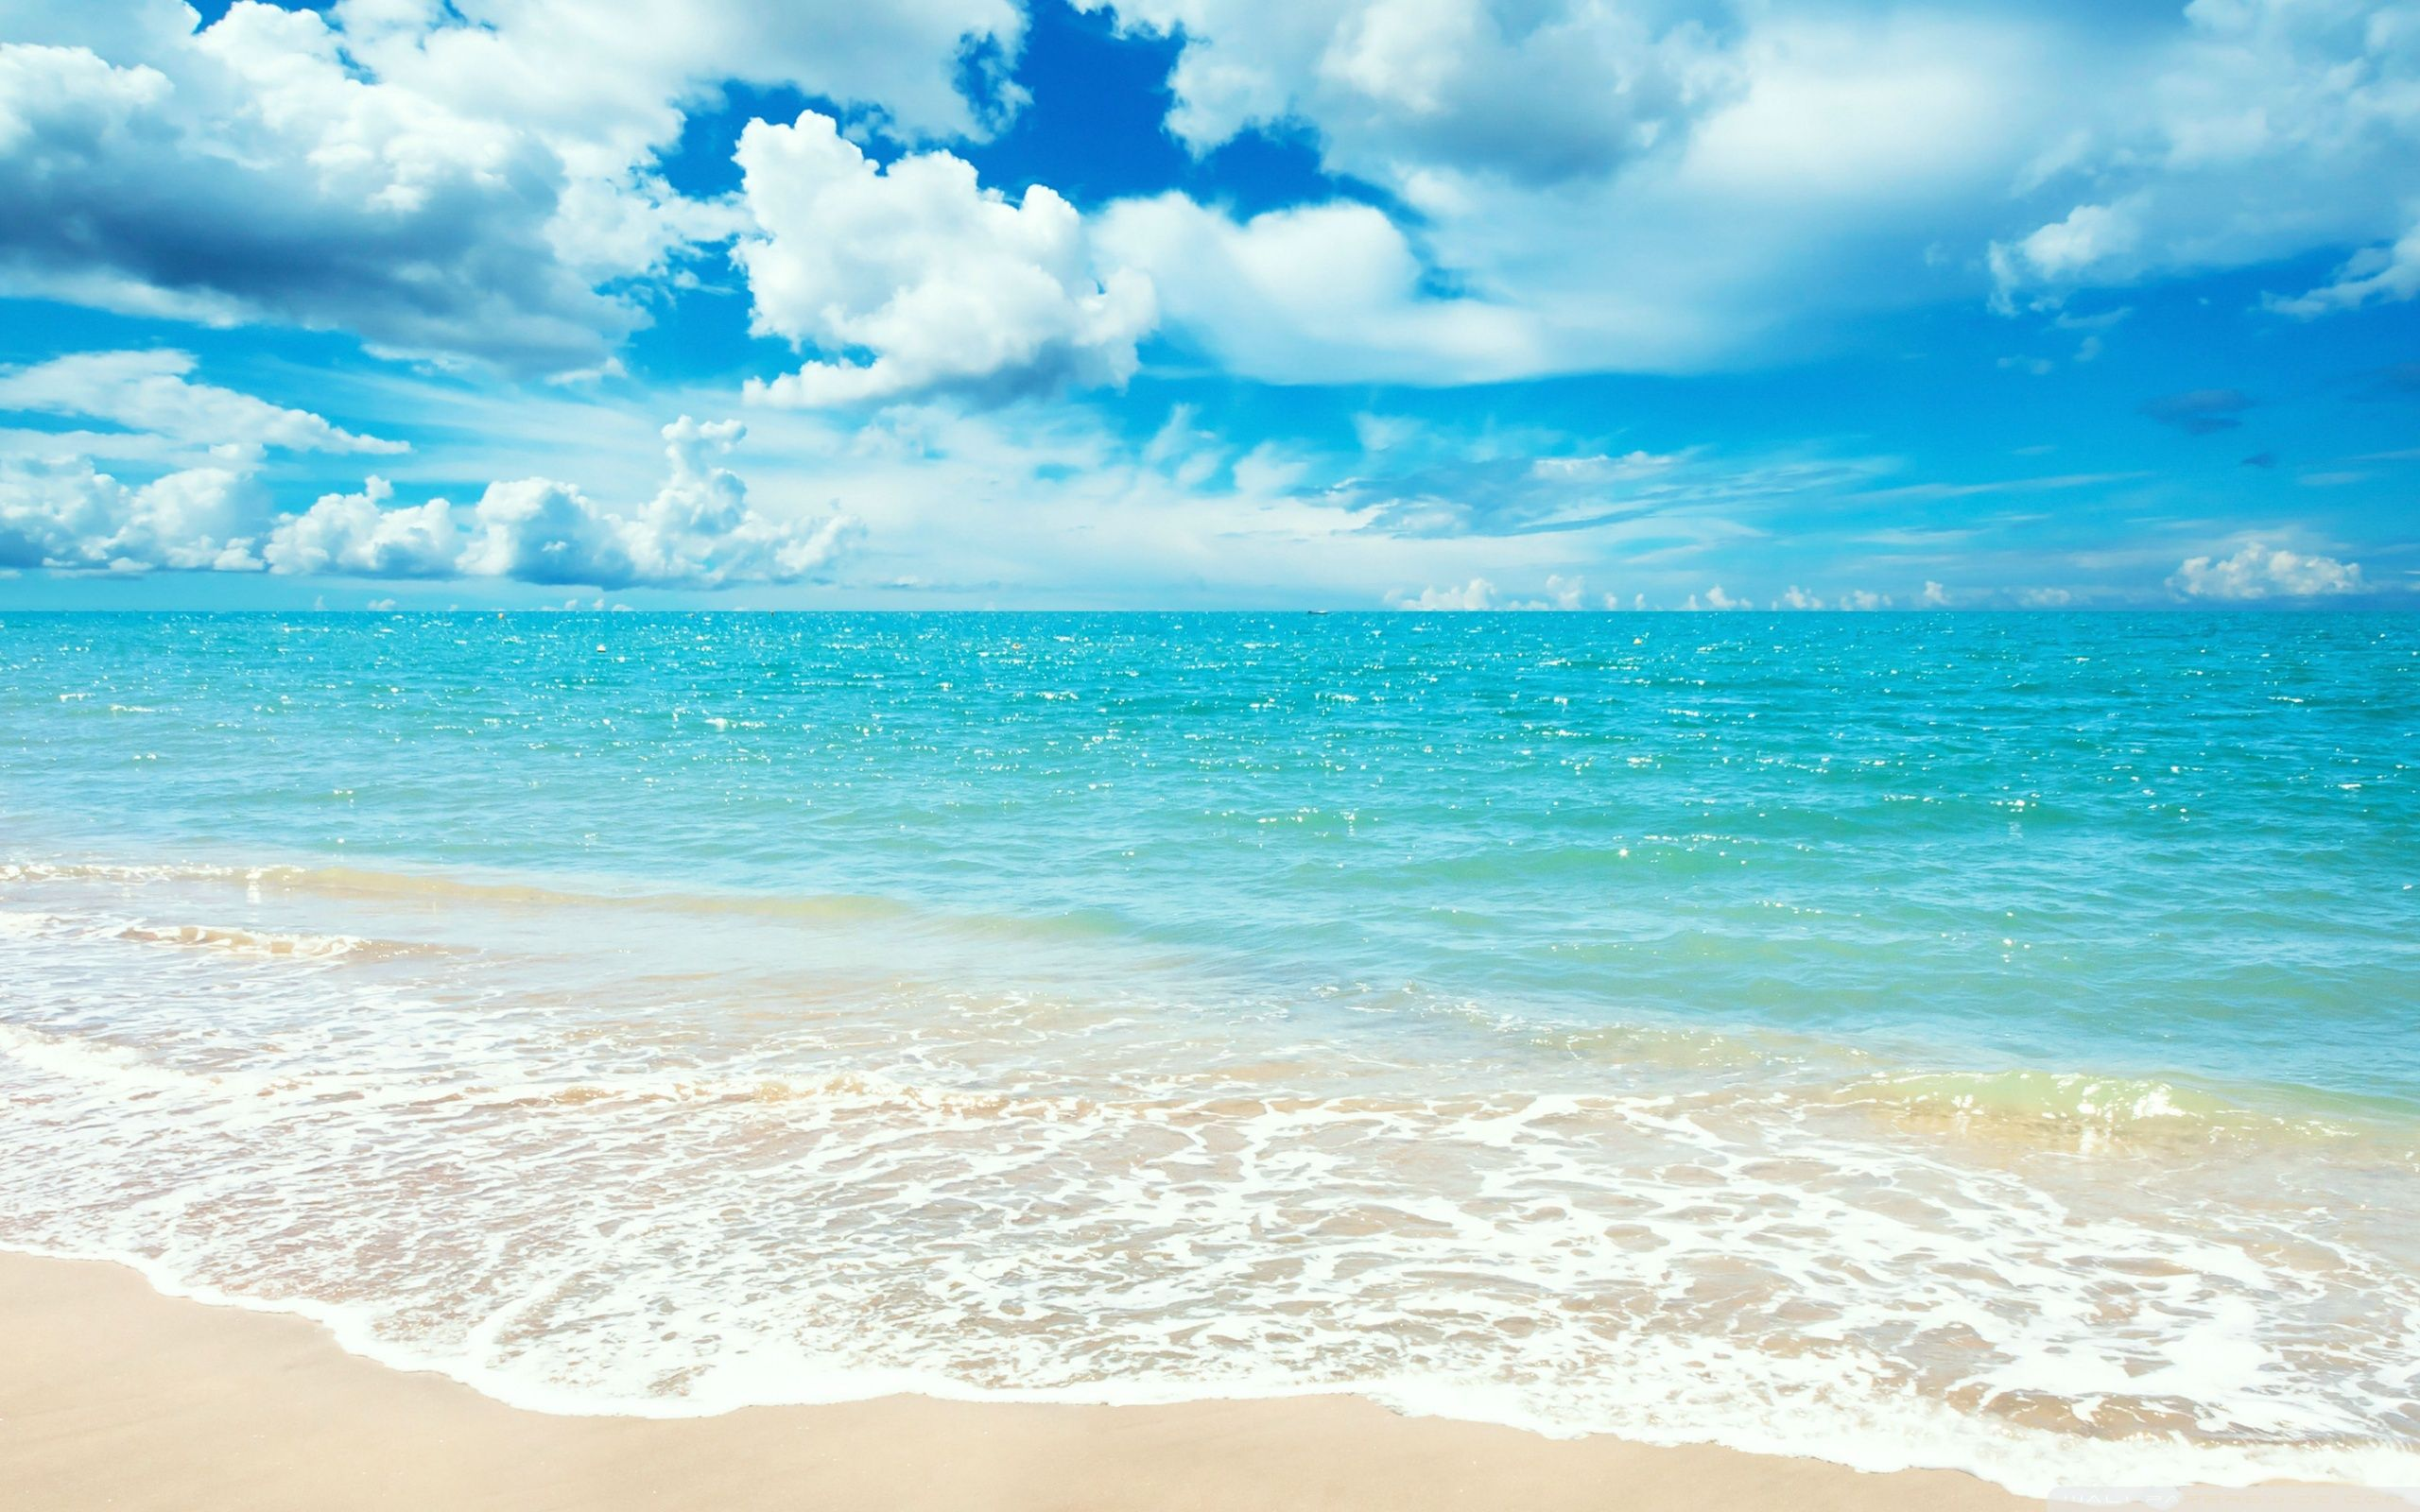 High Resolution Beach Wallpaper (With images) Beach